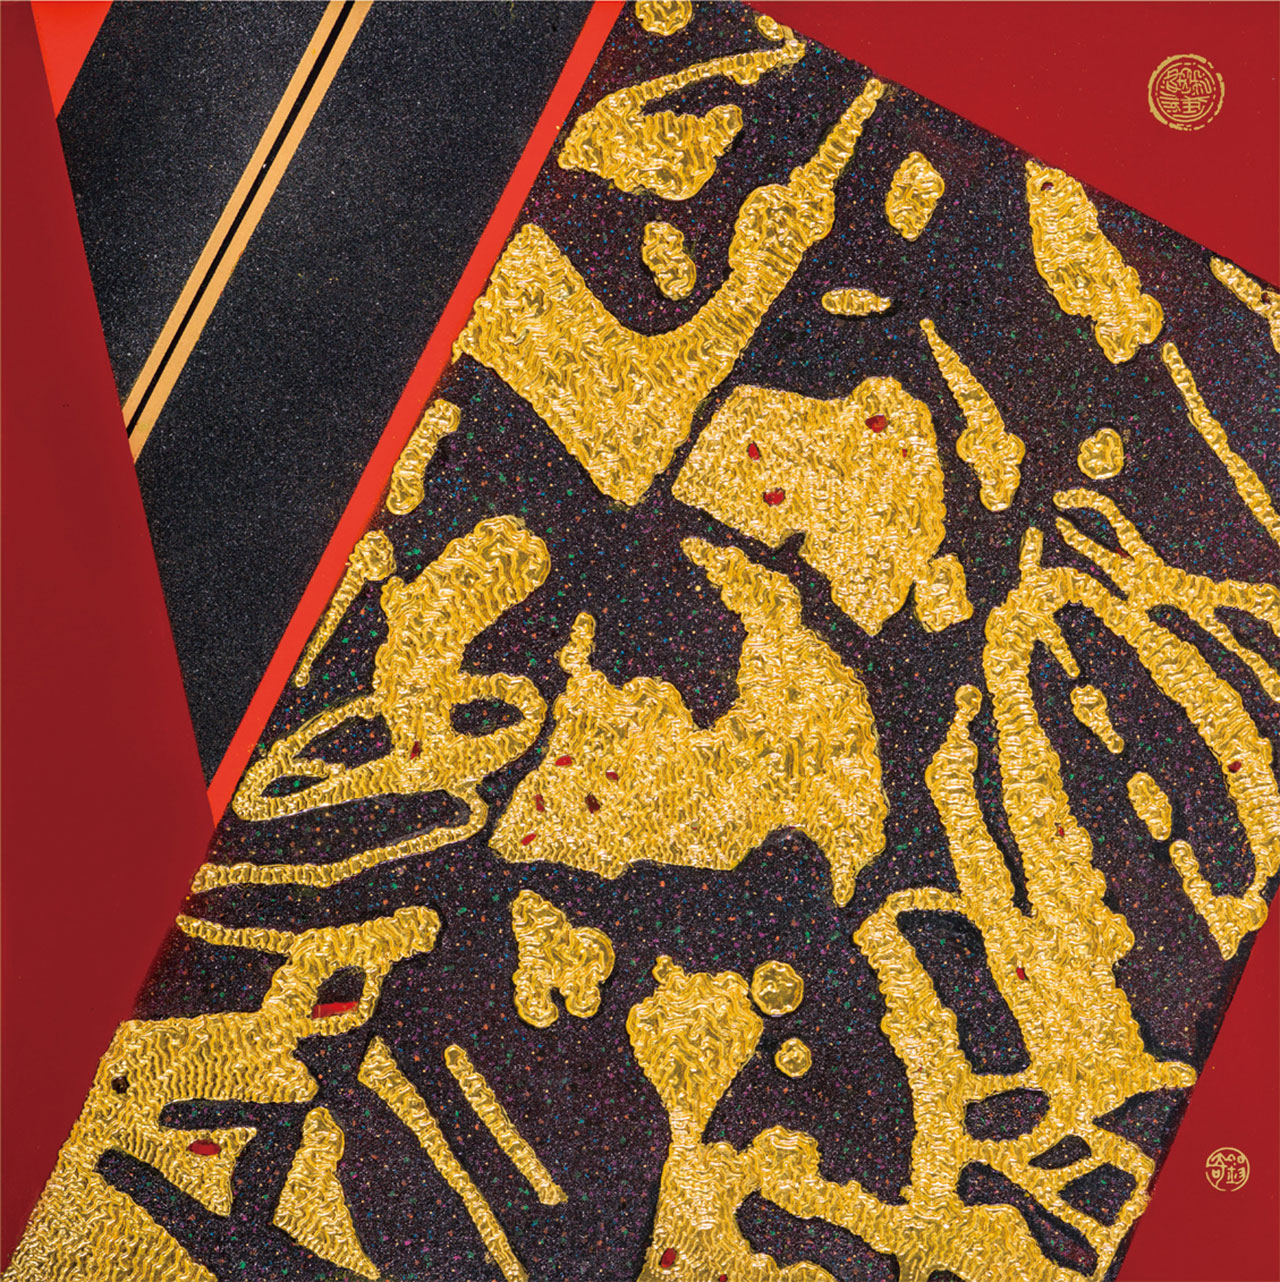 The Elegance of Han Dynasty Oriental13 Lacquer, mixed media 90x90cm